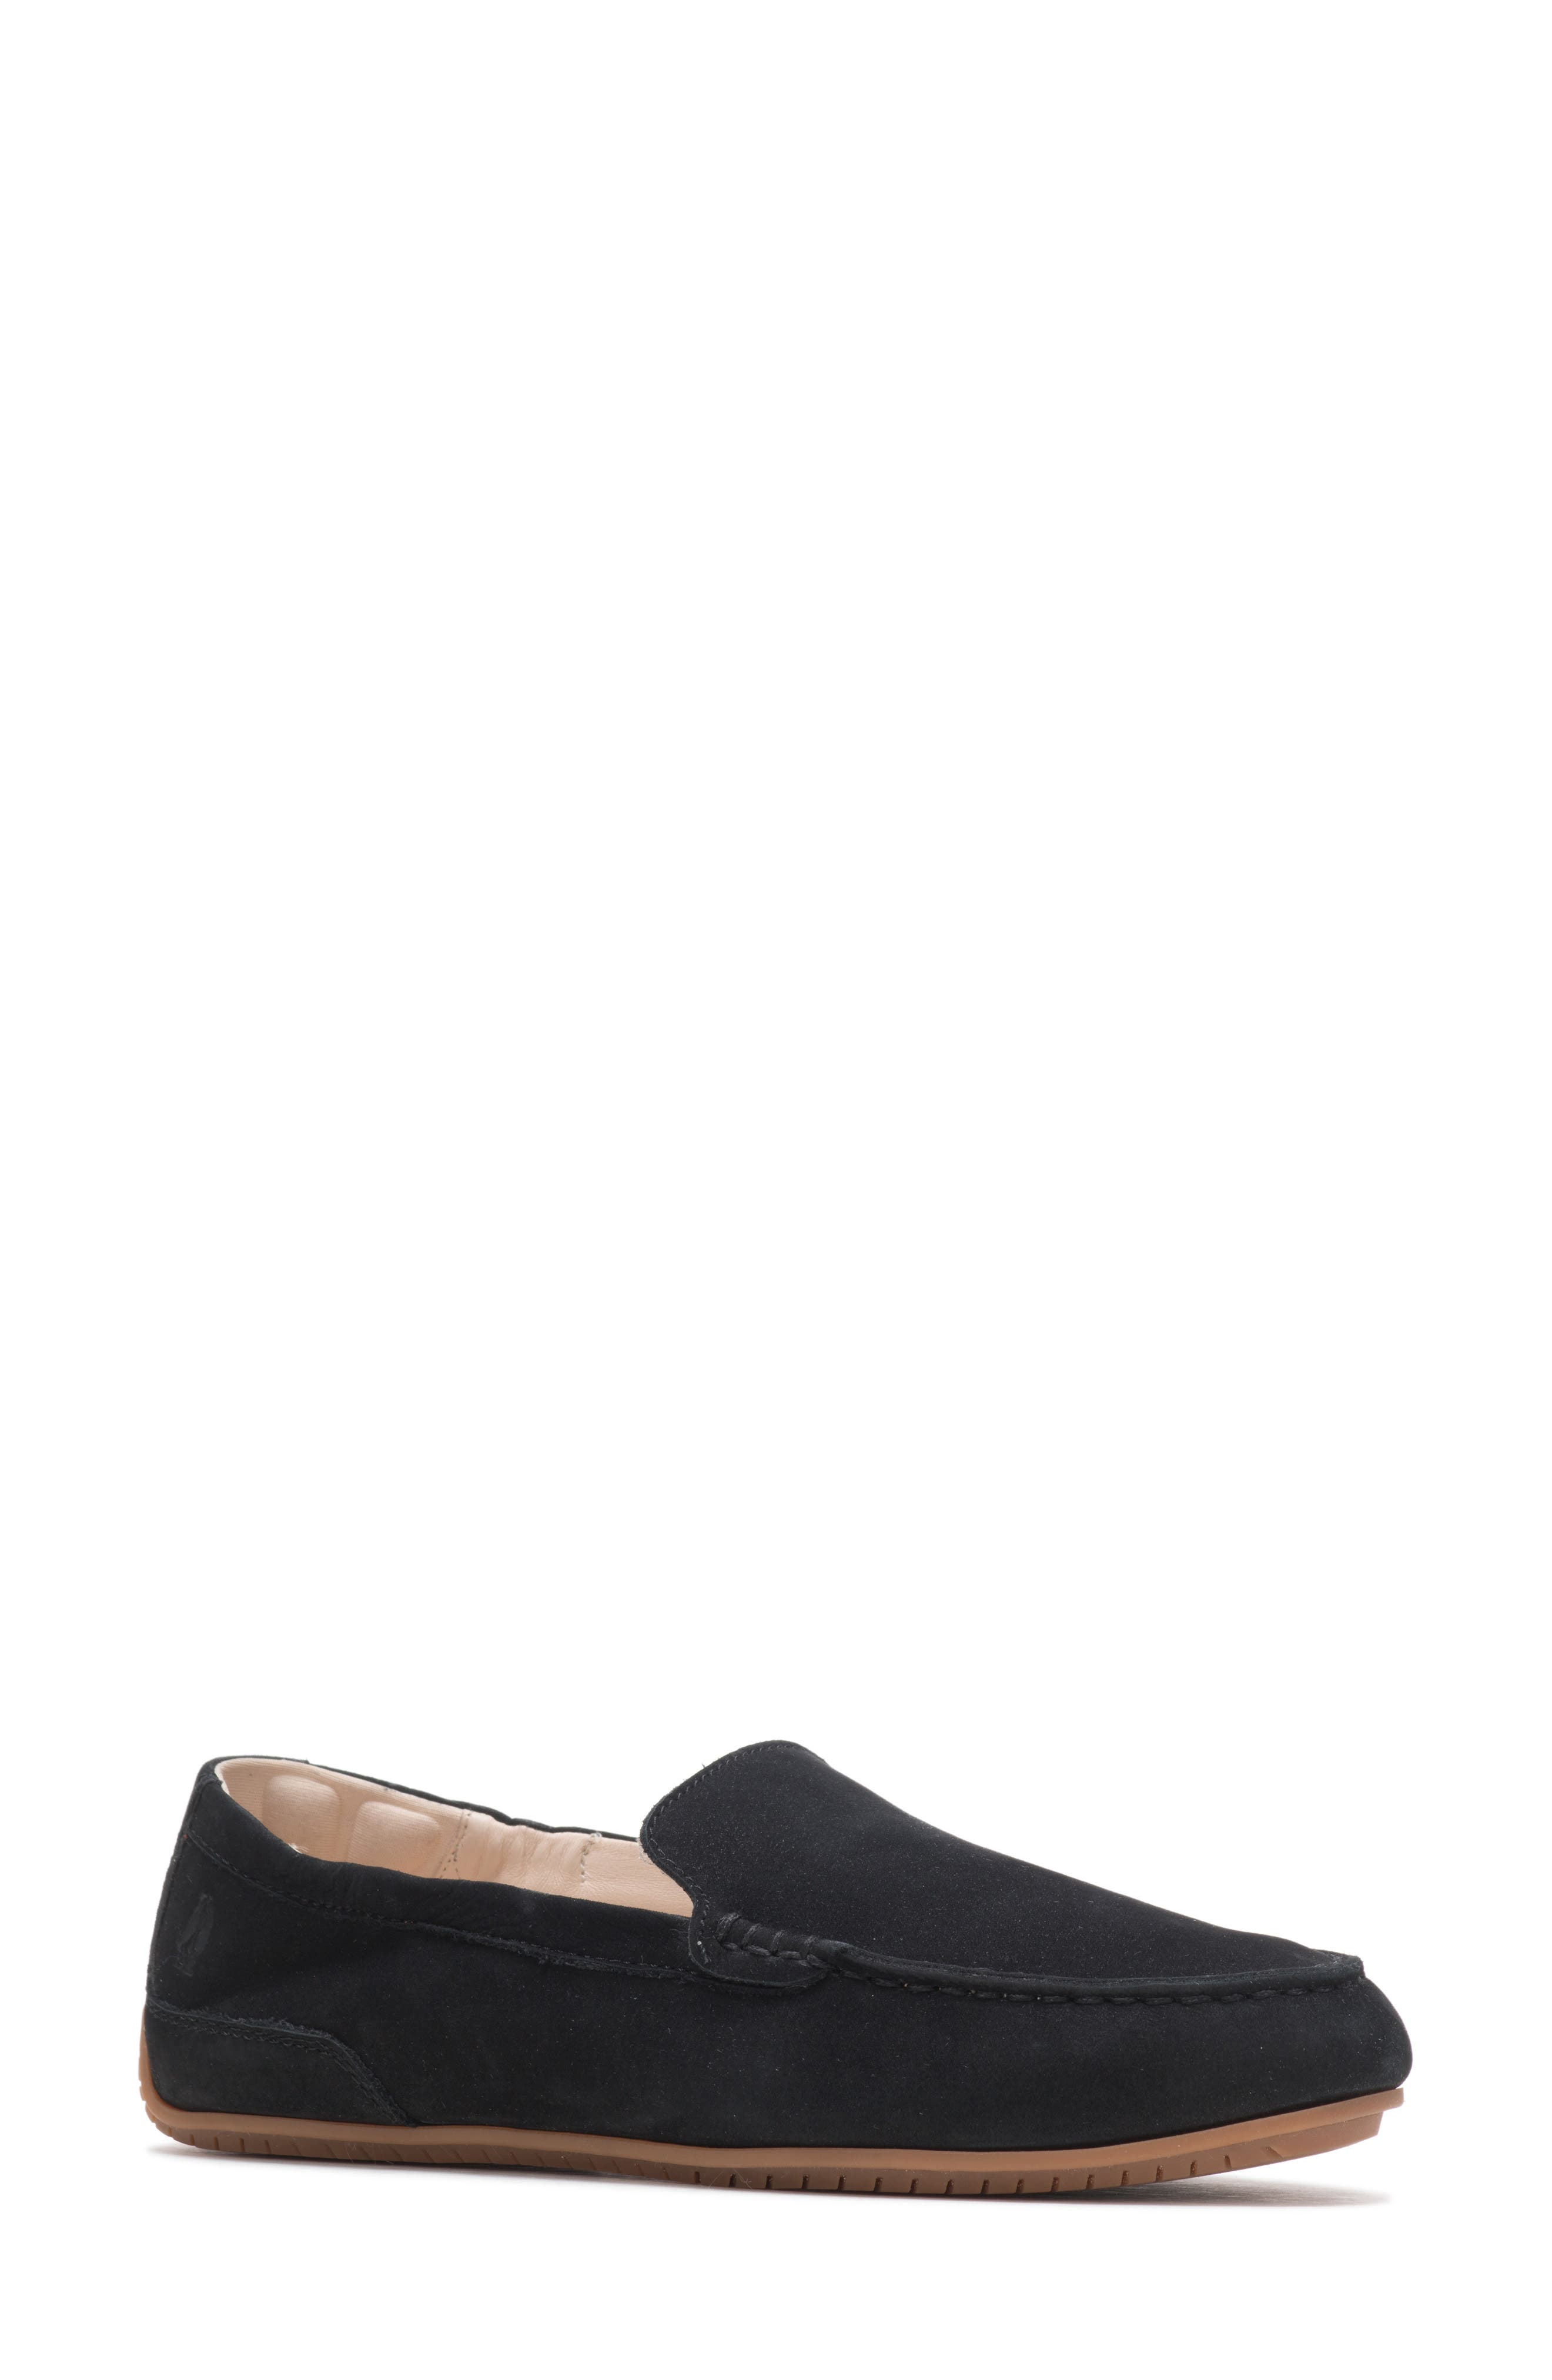 Cora Leather Loafer